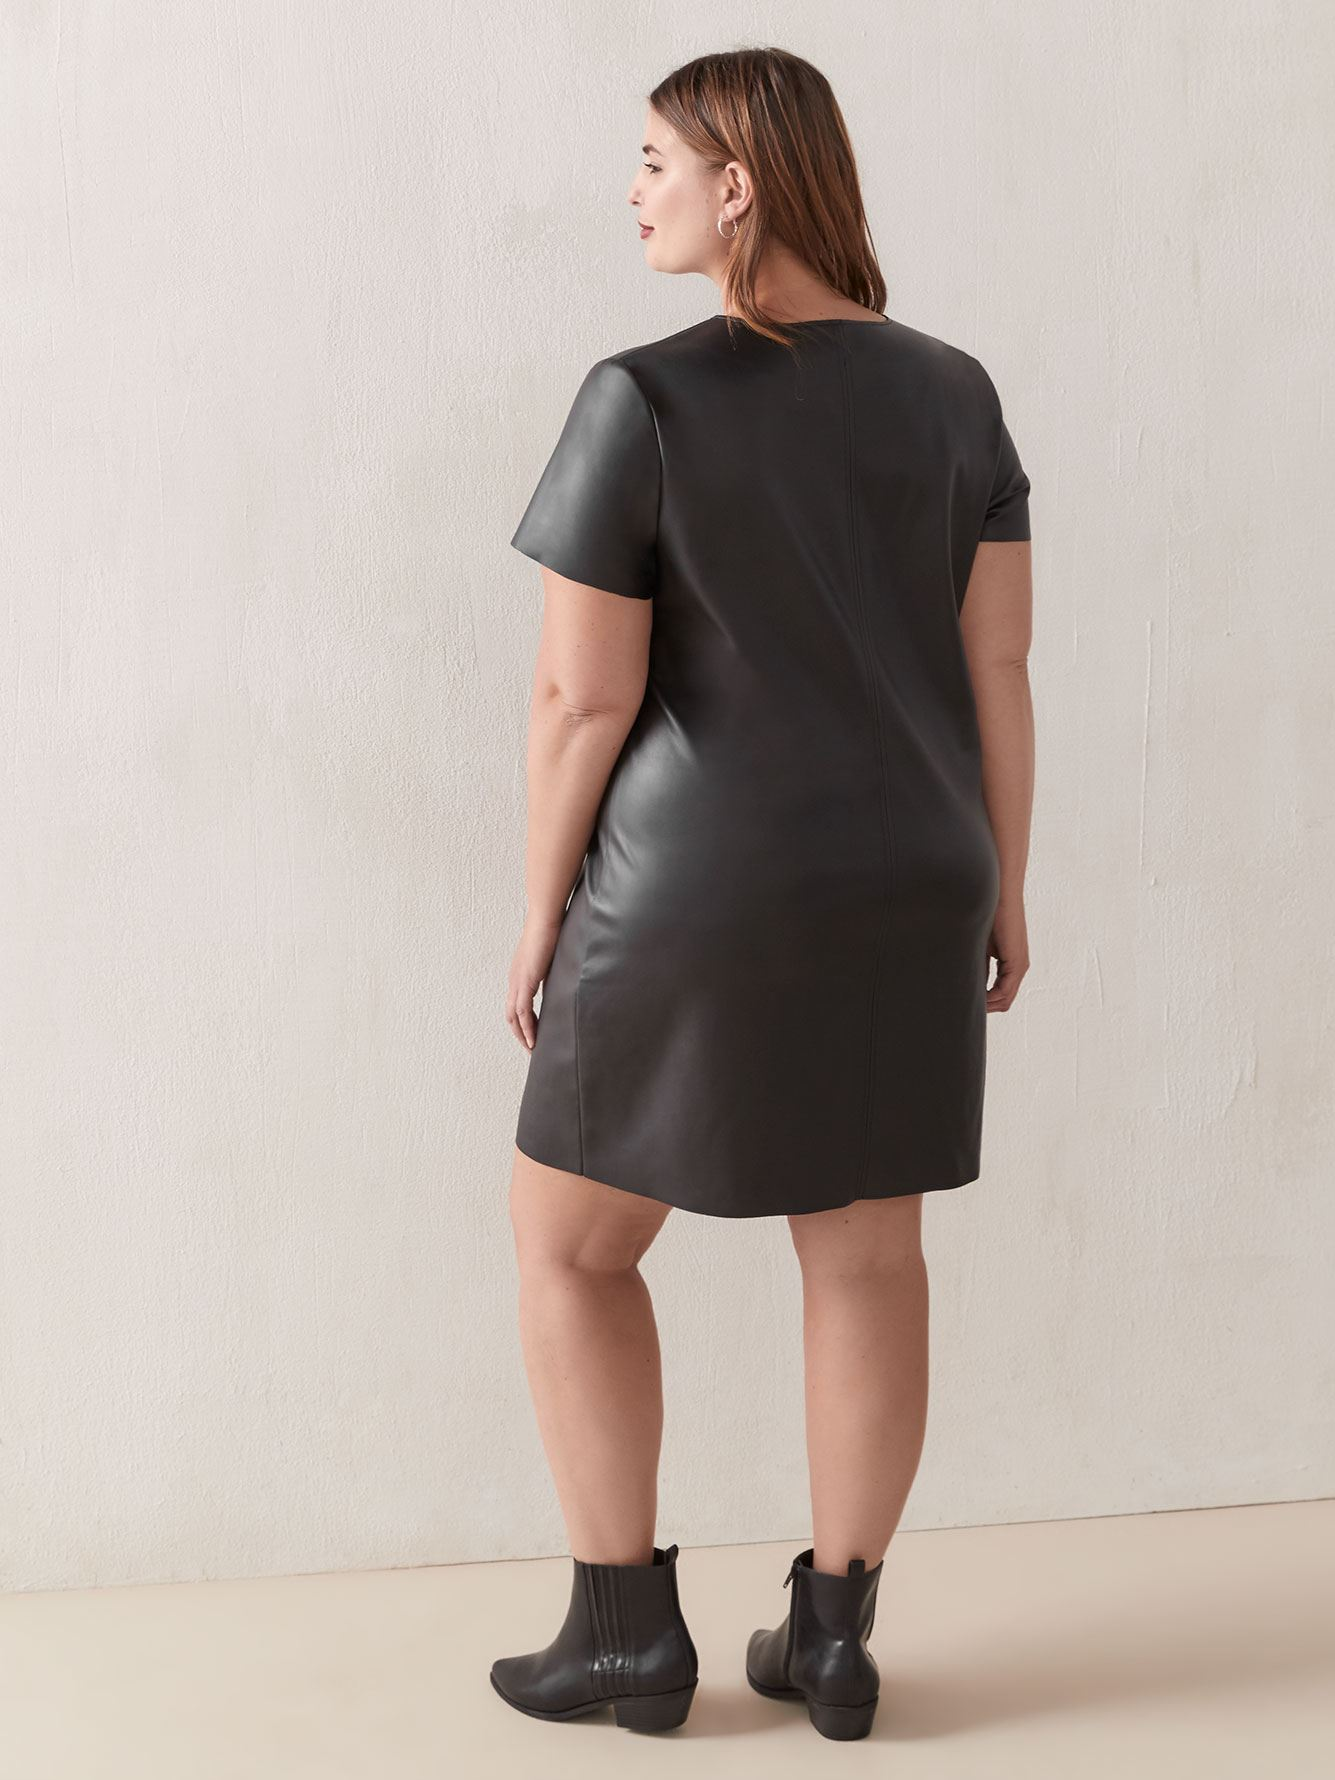 Solid Short Sleeve Faux Leather Dress - Love & Legend